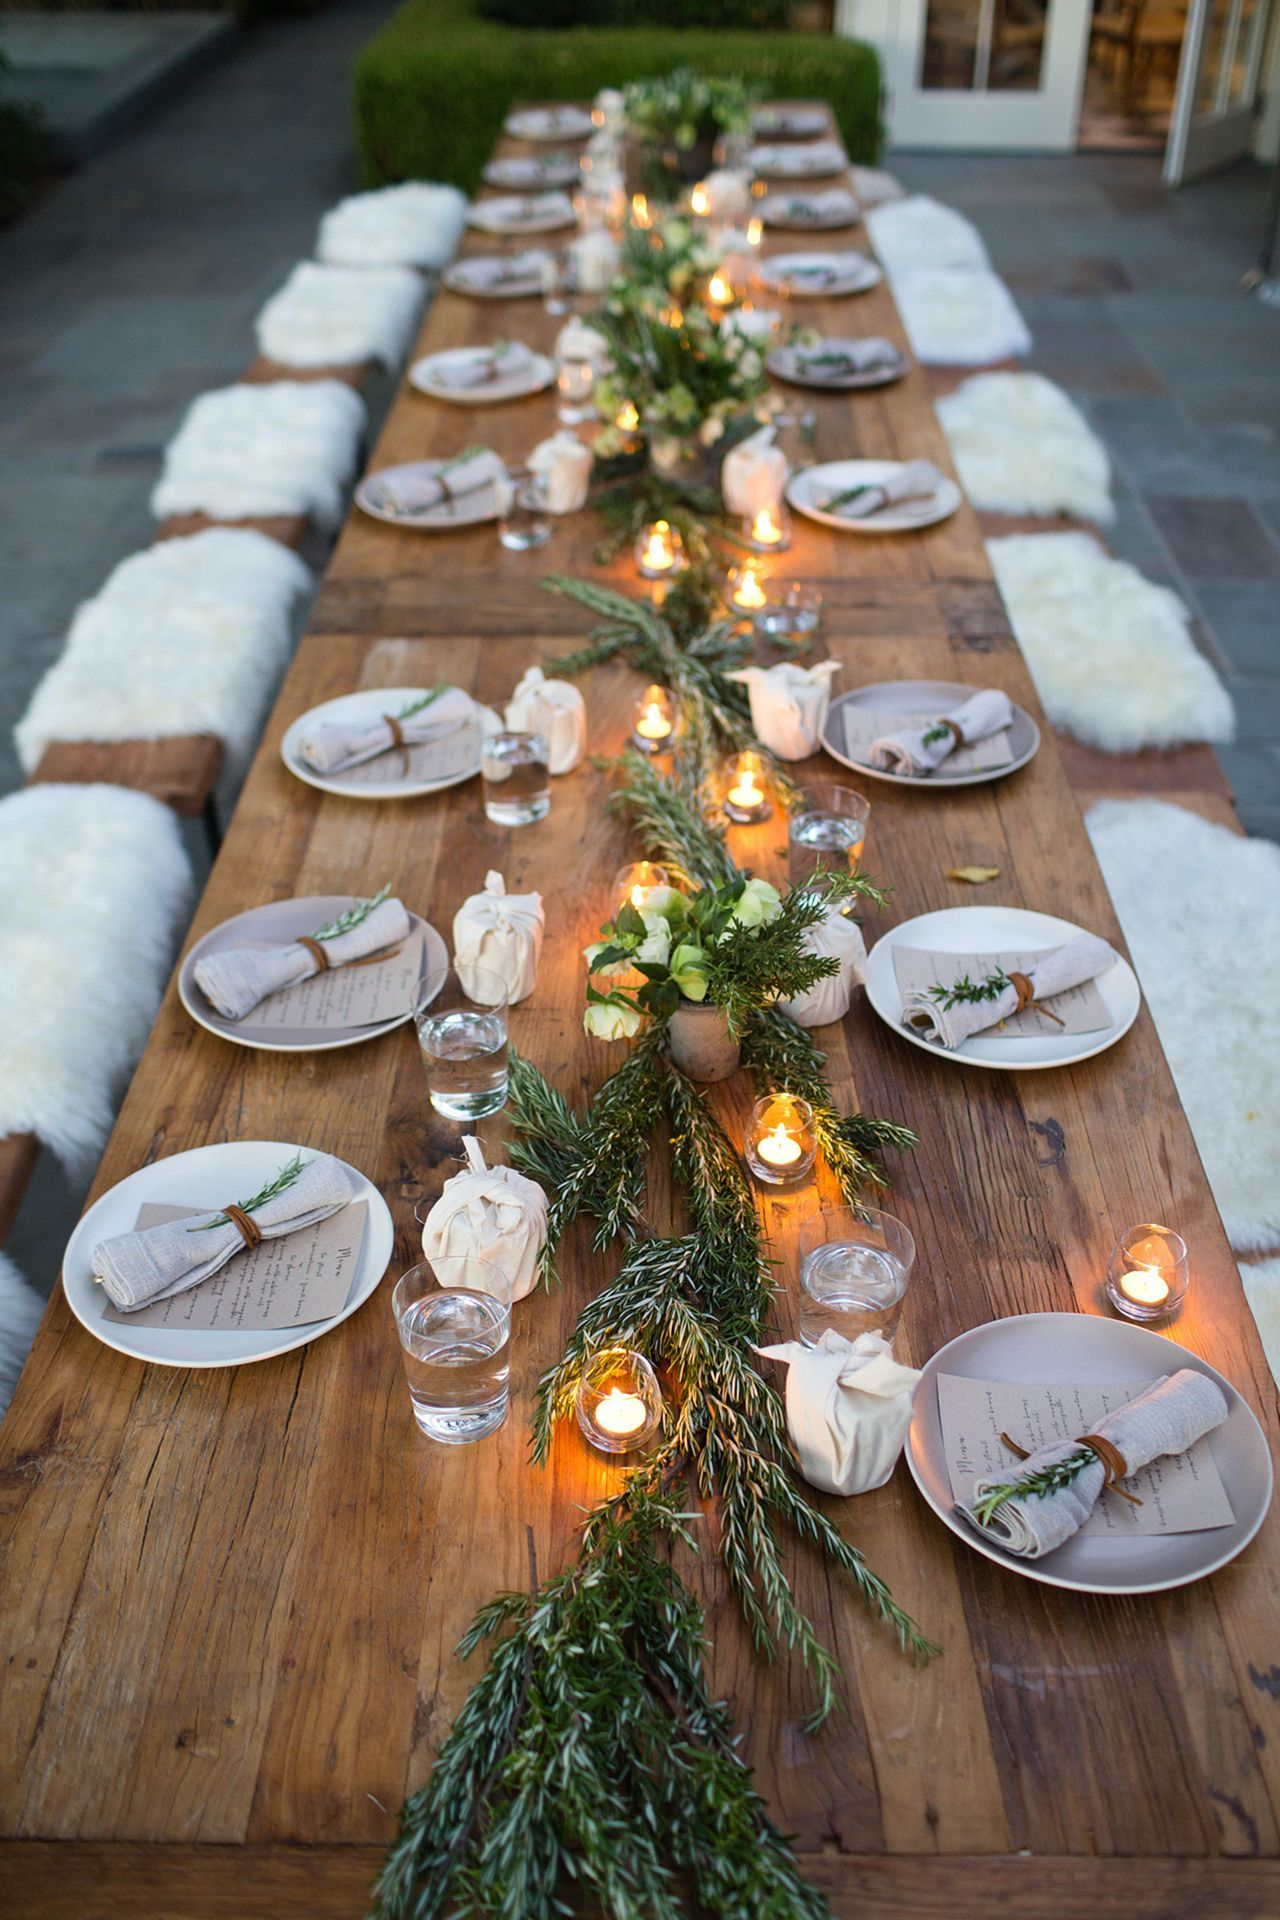 romantic candlelit winter wedding table decoration ideas